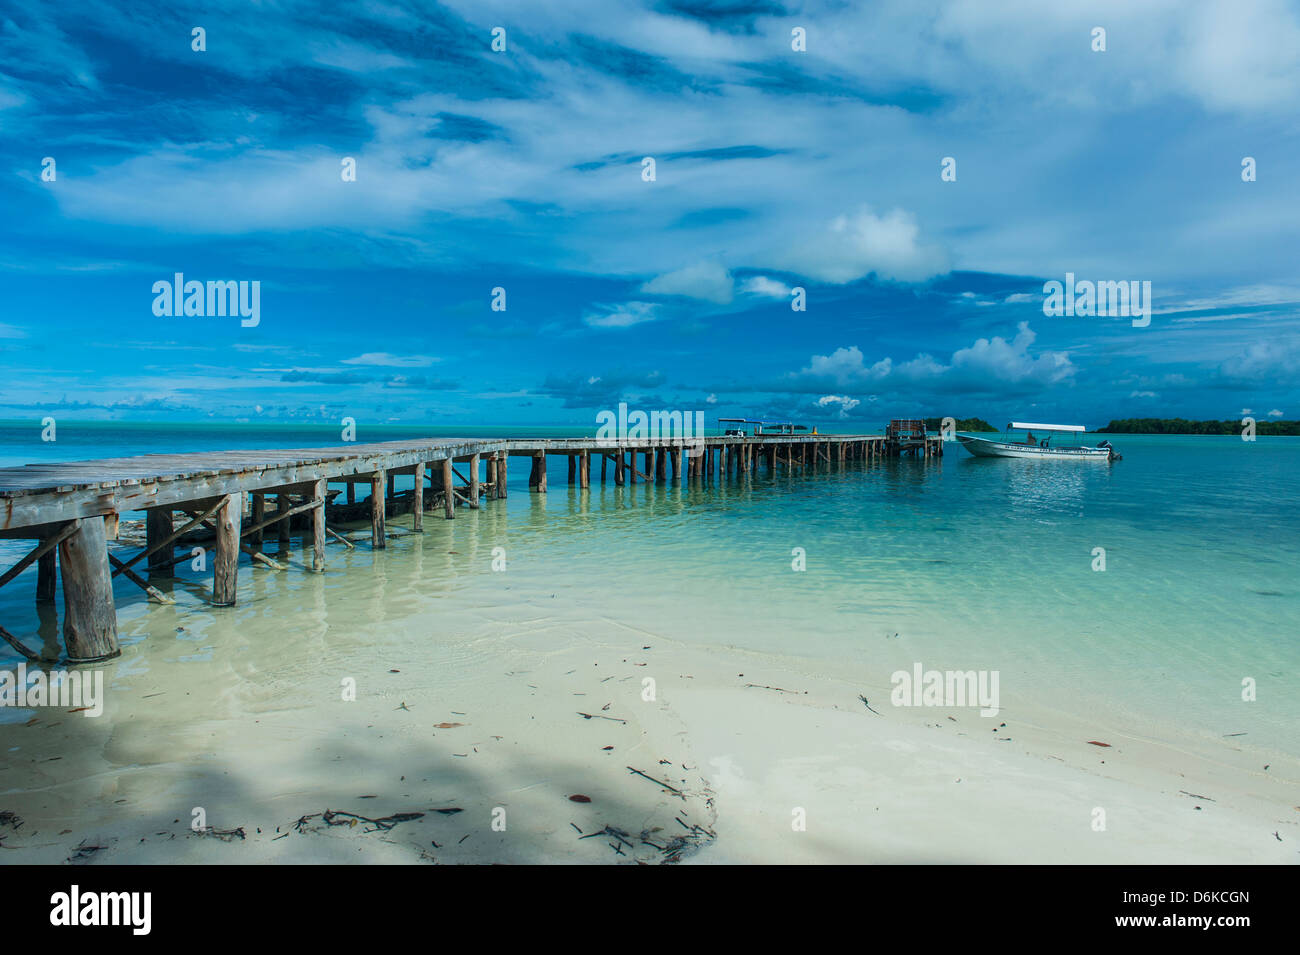 Boat pier on Carp island, one of the Rock islands, Palau, Central Pacific, Pacific - Stock Image